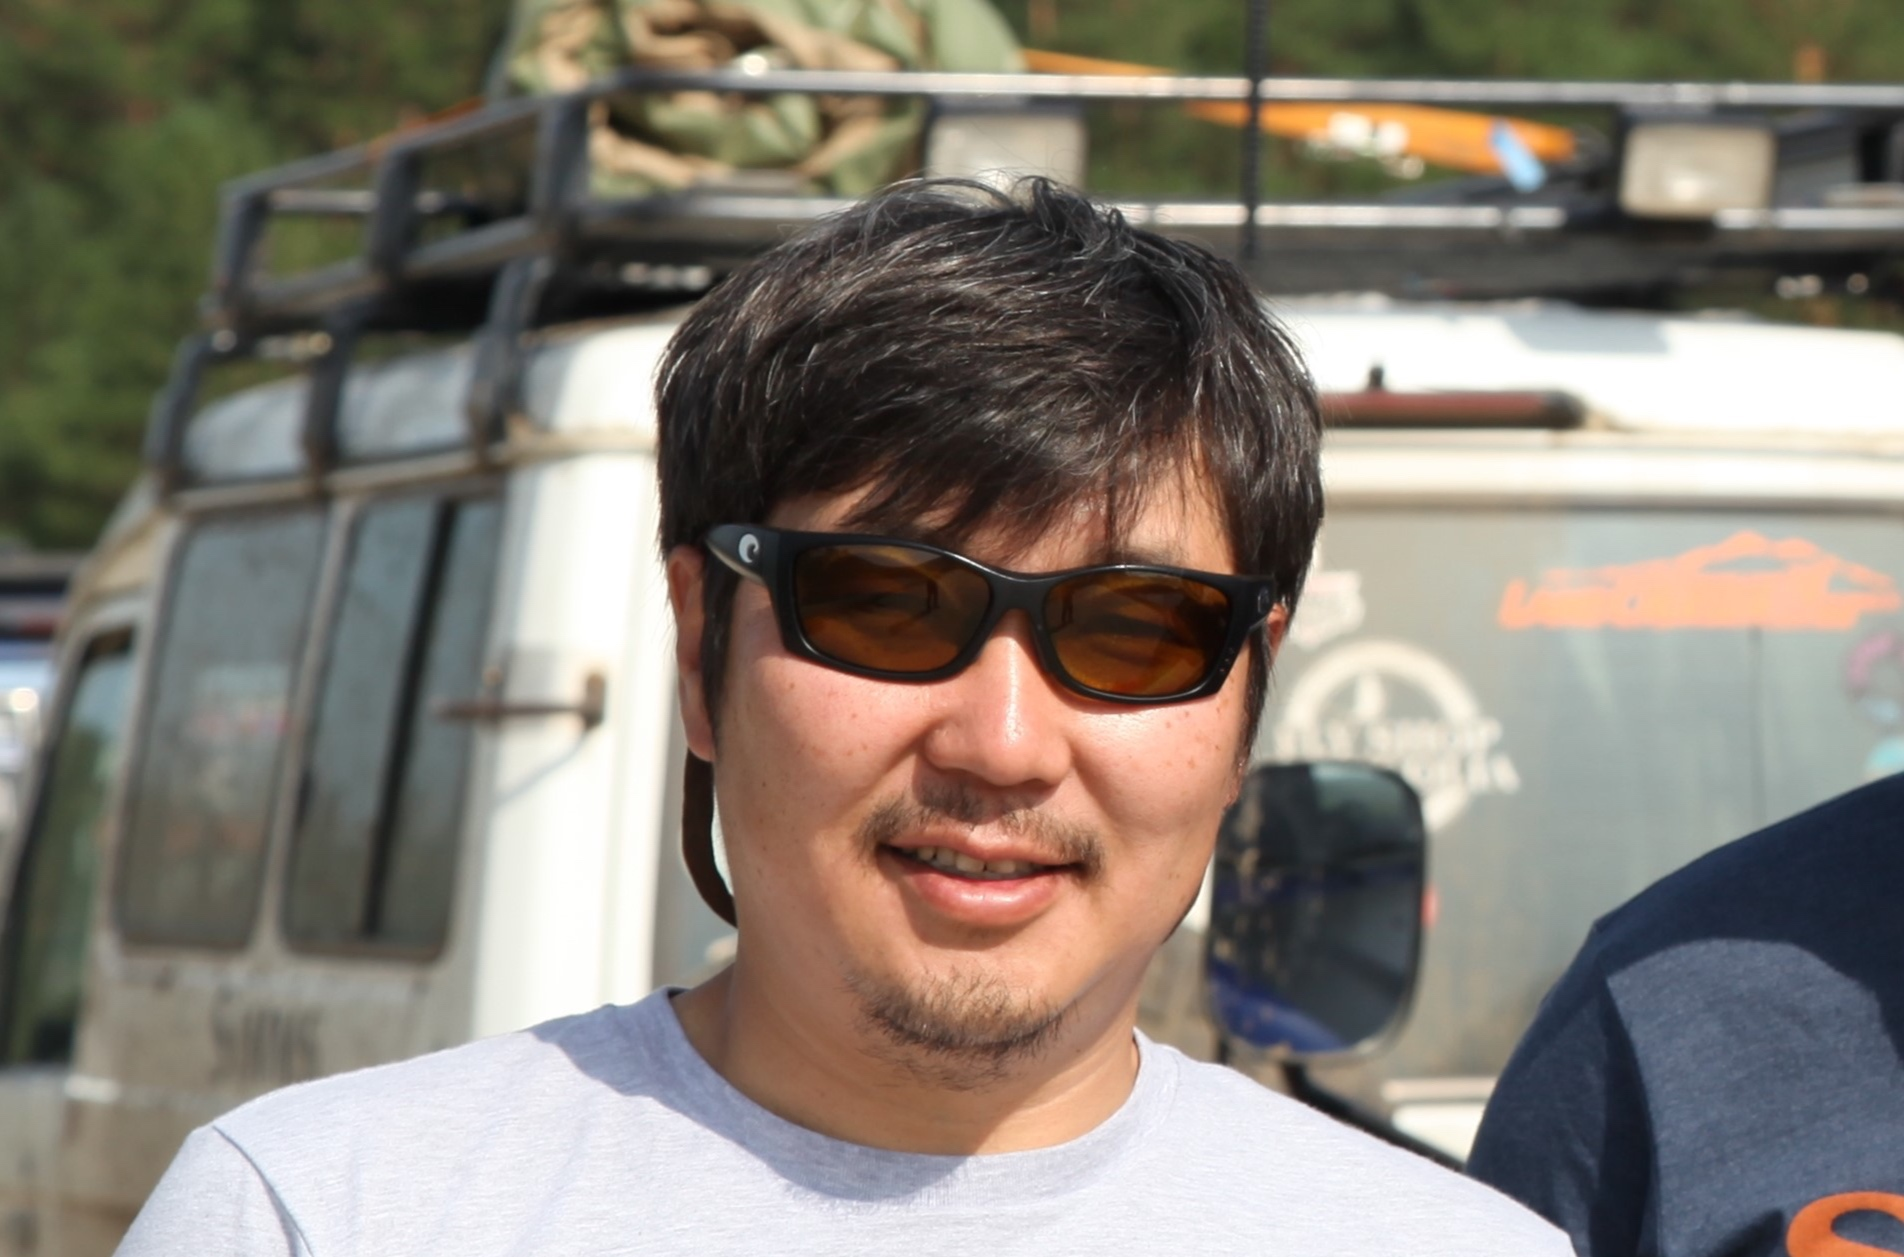 GANBAA i s theco-owner of Fly Shop Mongolia and serves as its executive director. He is an experienced and passionate fly fisherman and, at the same time, works for our partner company A Jet Aviation. Ganbat has been fly fishing throughout Mongolia including many very remote areas.